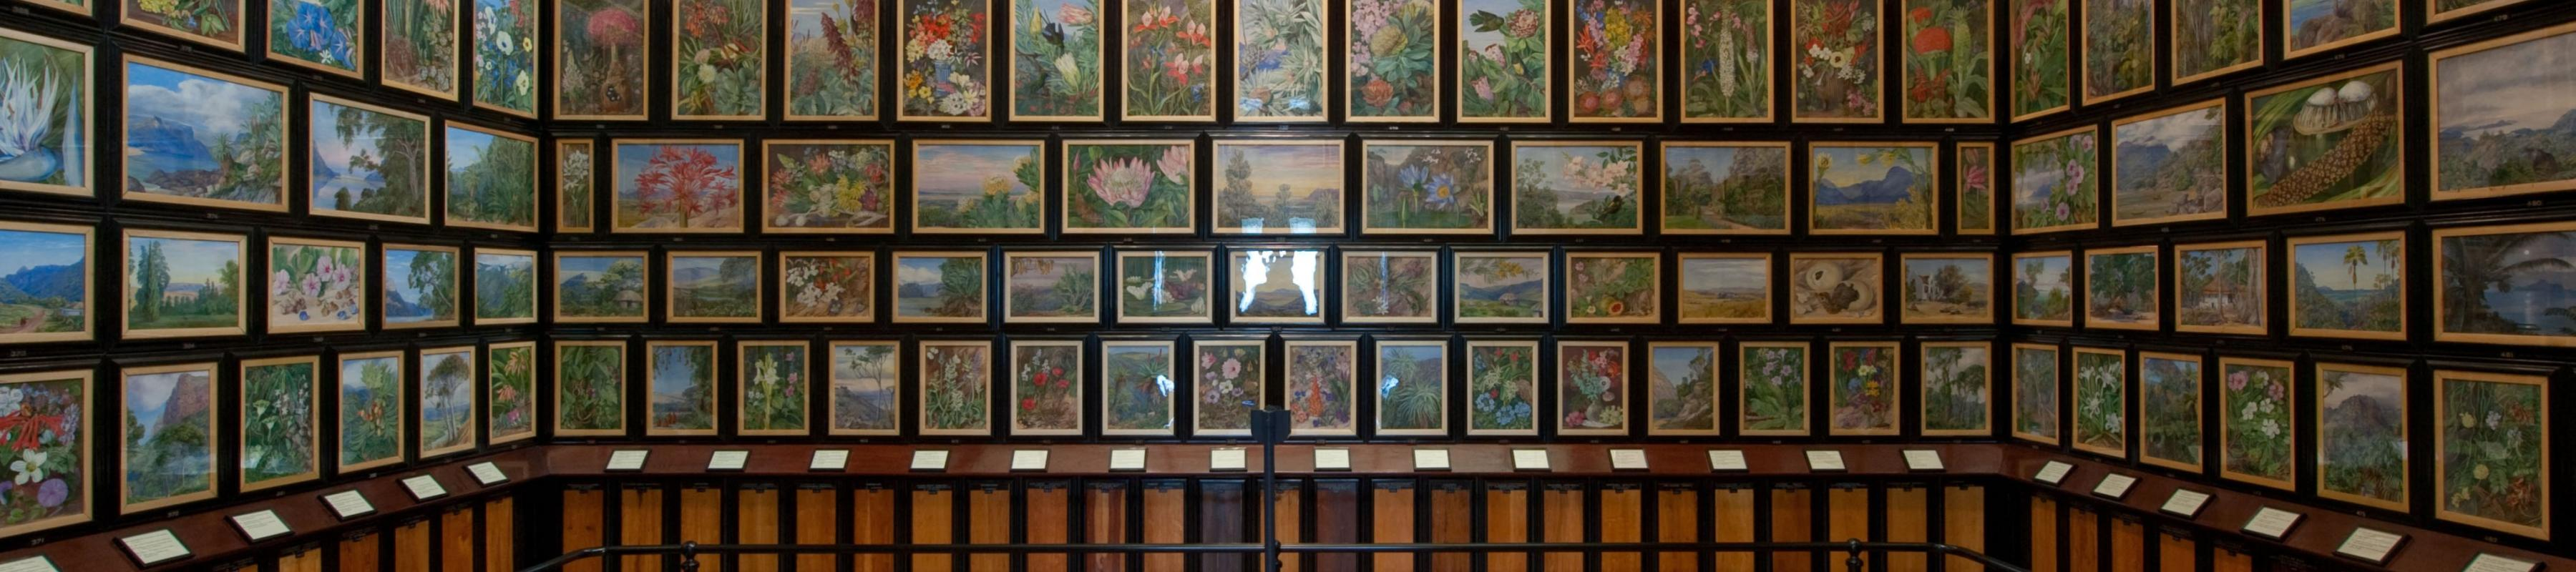 Marianne North Gallery, RBG Kew